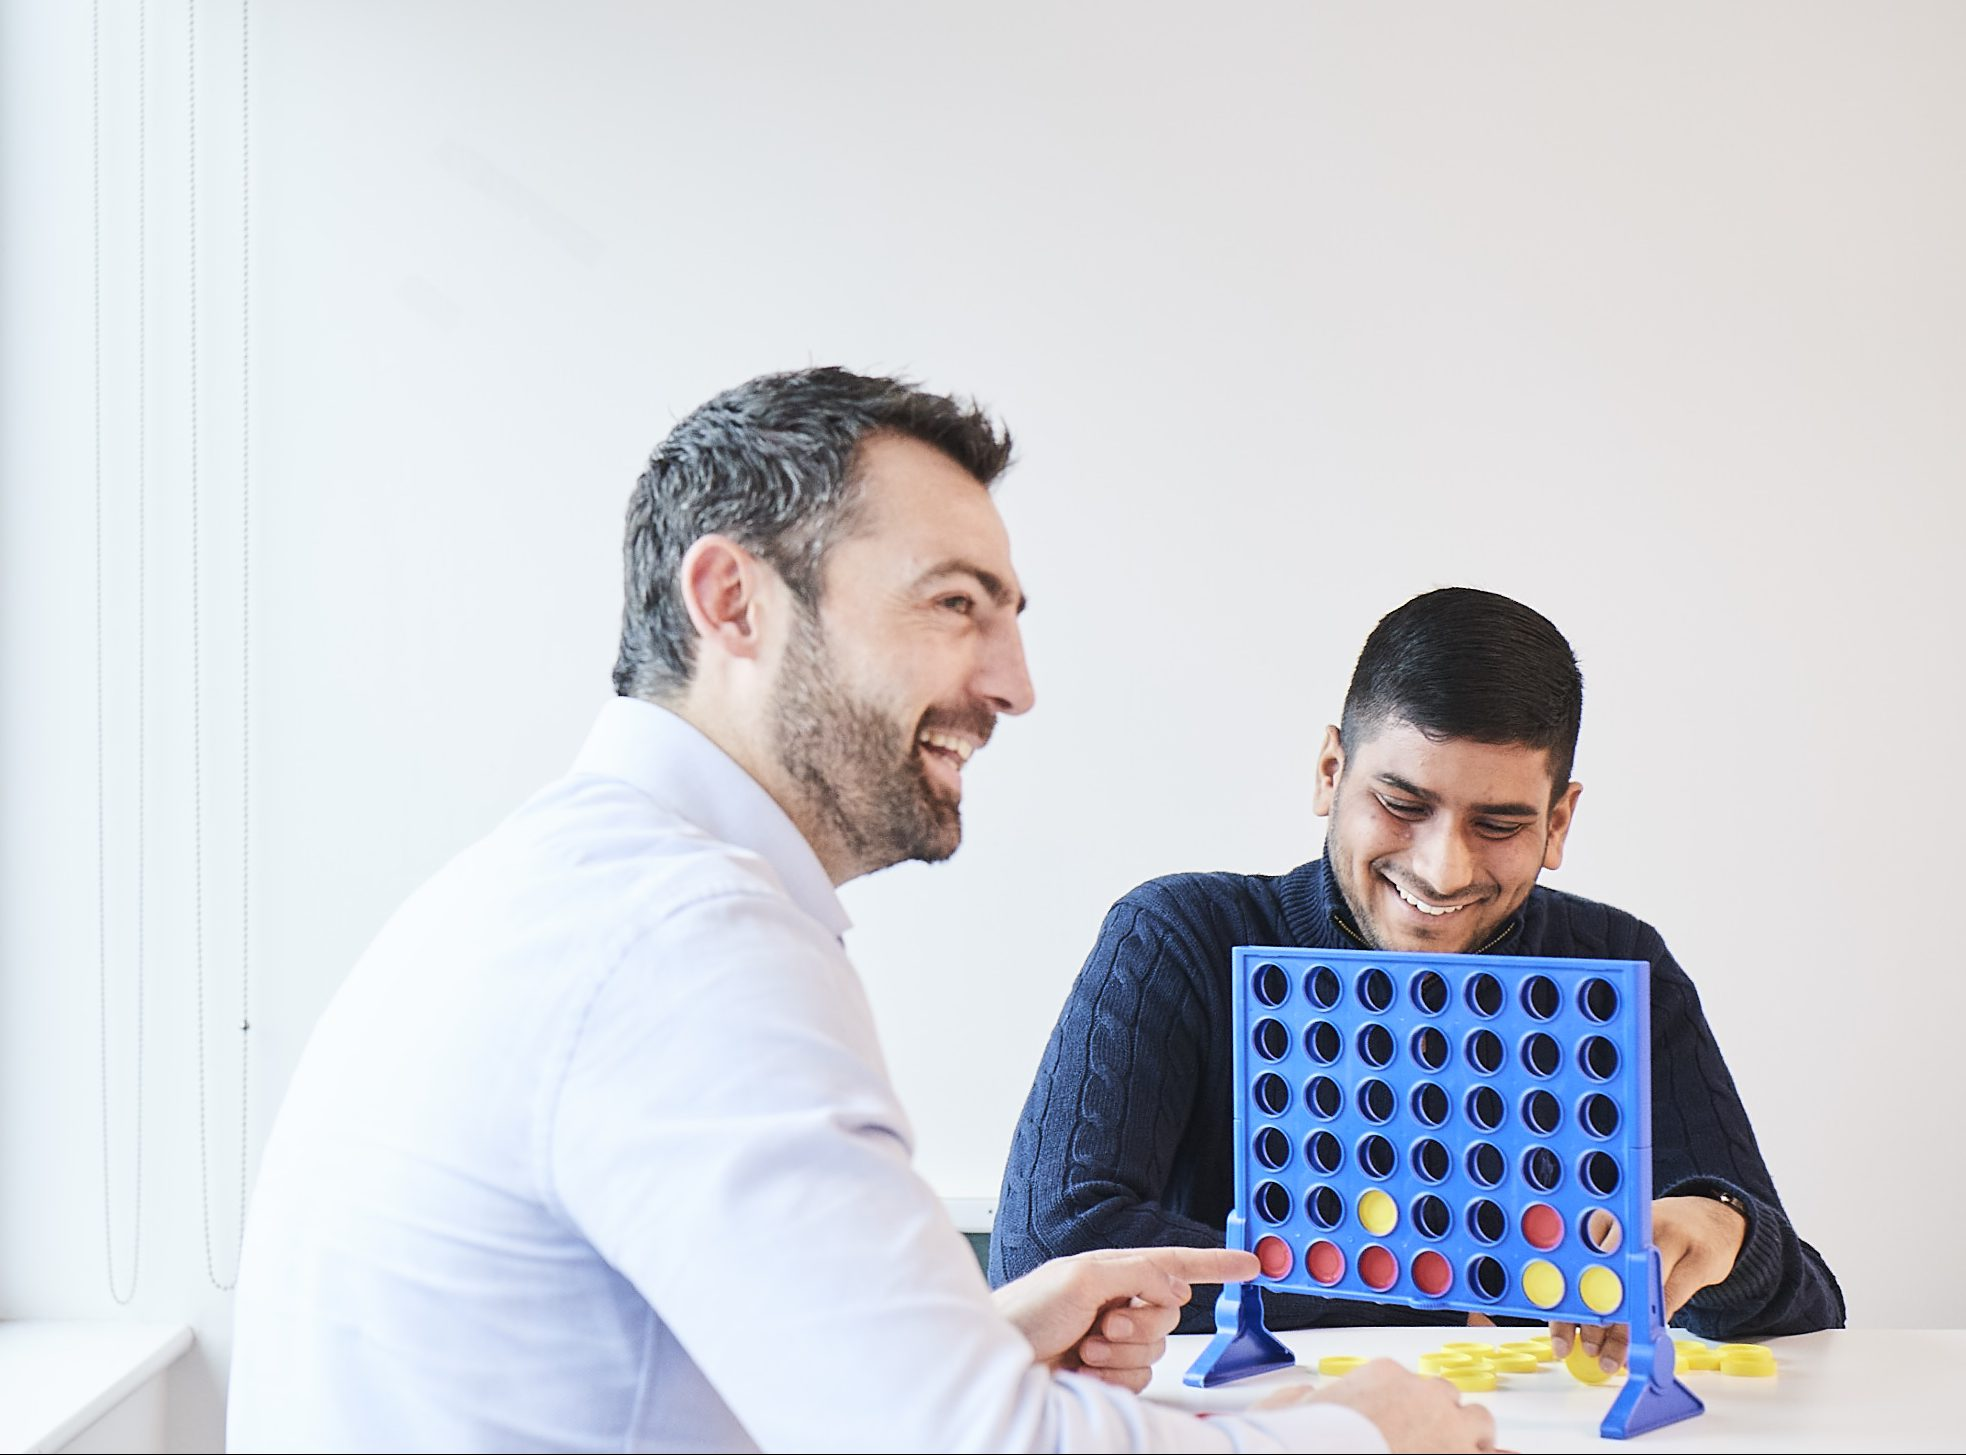 Close up shot of two male colleagues sitting at a table playing connect 4